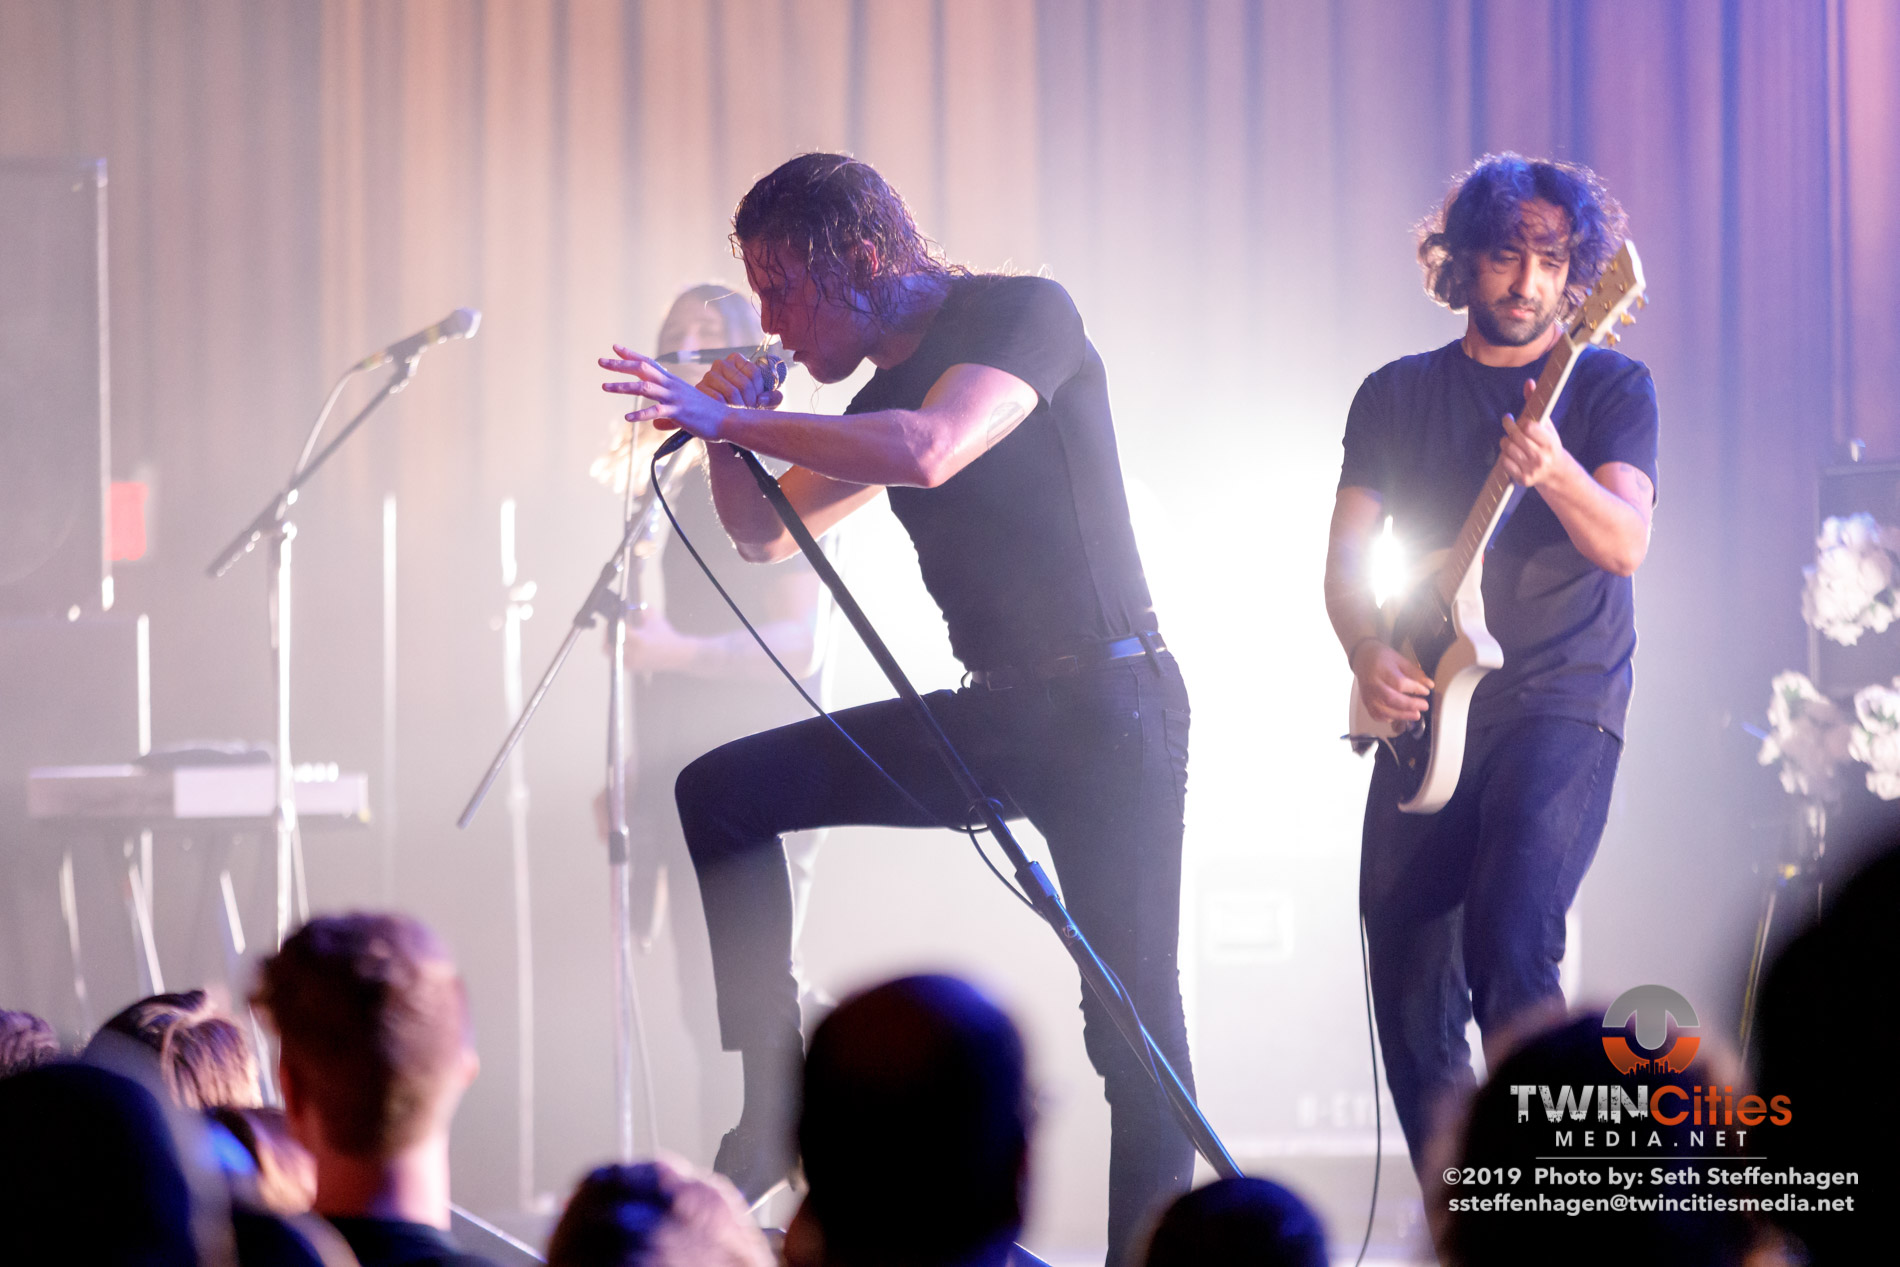 March 29, 2019 - Minneapolis, Minnesota, United States - Deafheaven live in concert at the Skyway Theatre co-headling with Baroness along with Zeal & Ardor as the openers.  (Photo by Seth Steffenhagen/Steffenhagen Photography)